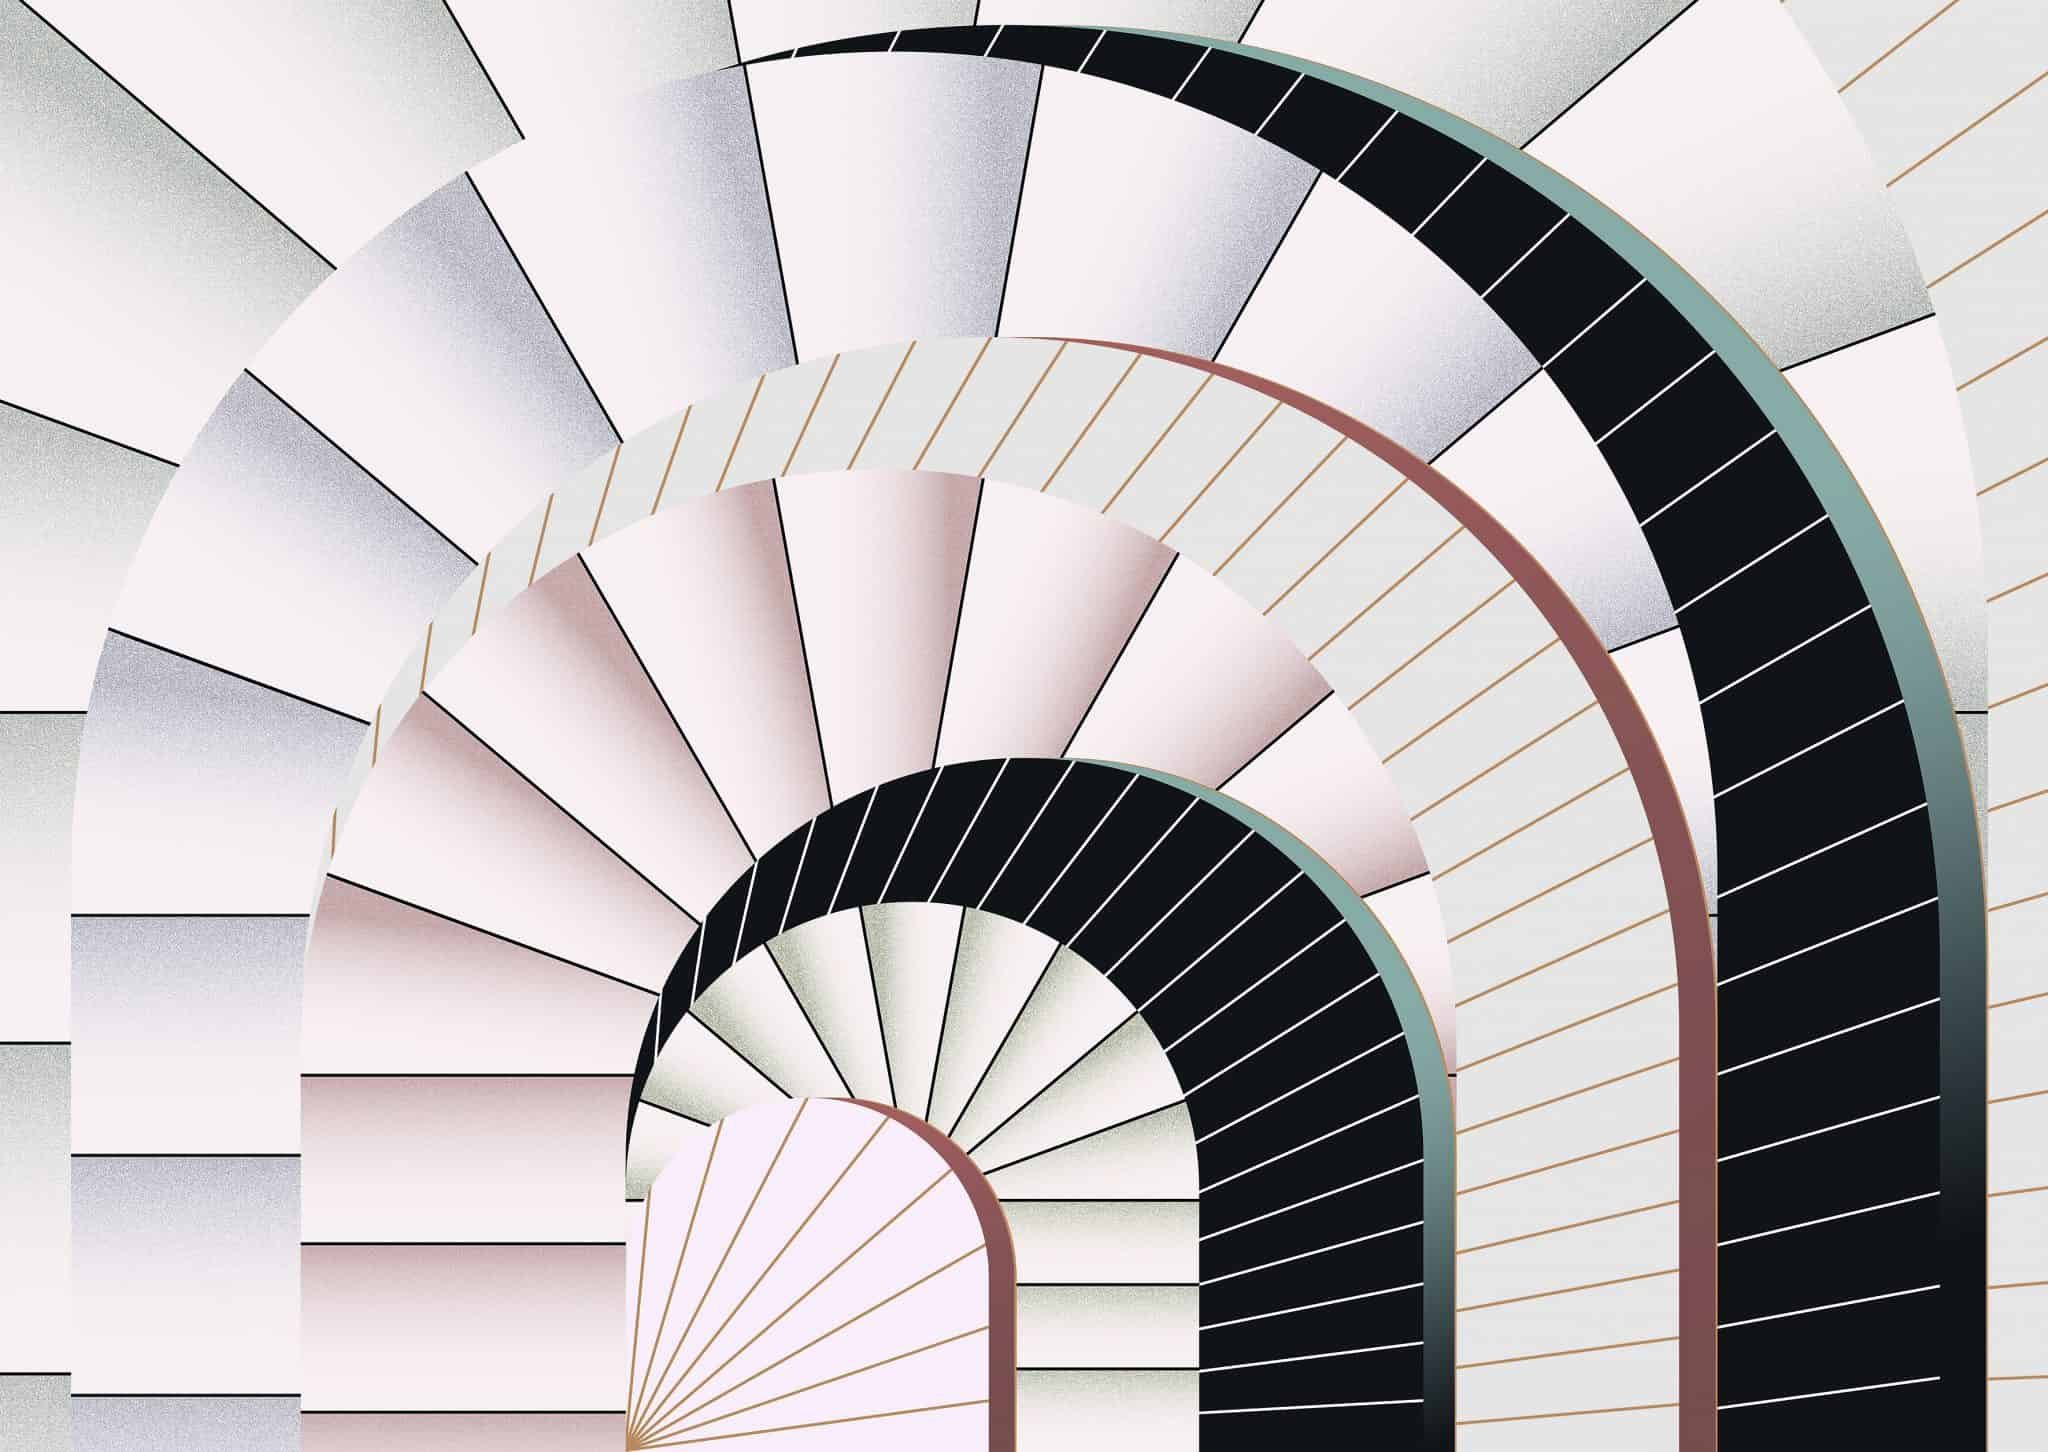 Wallpaper design with arches pattern by Texturae